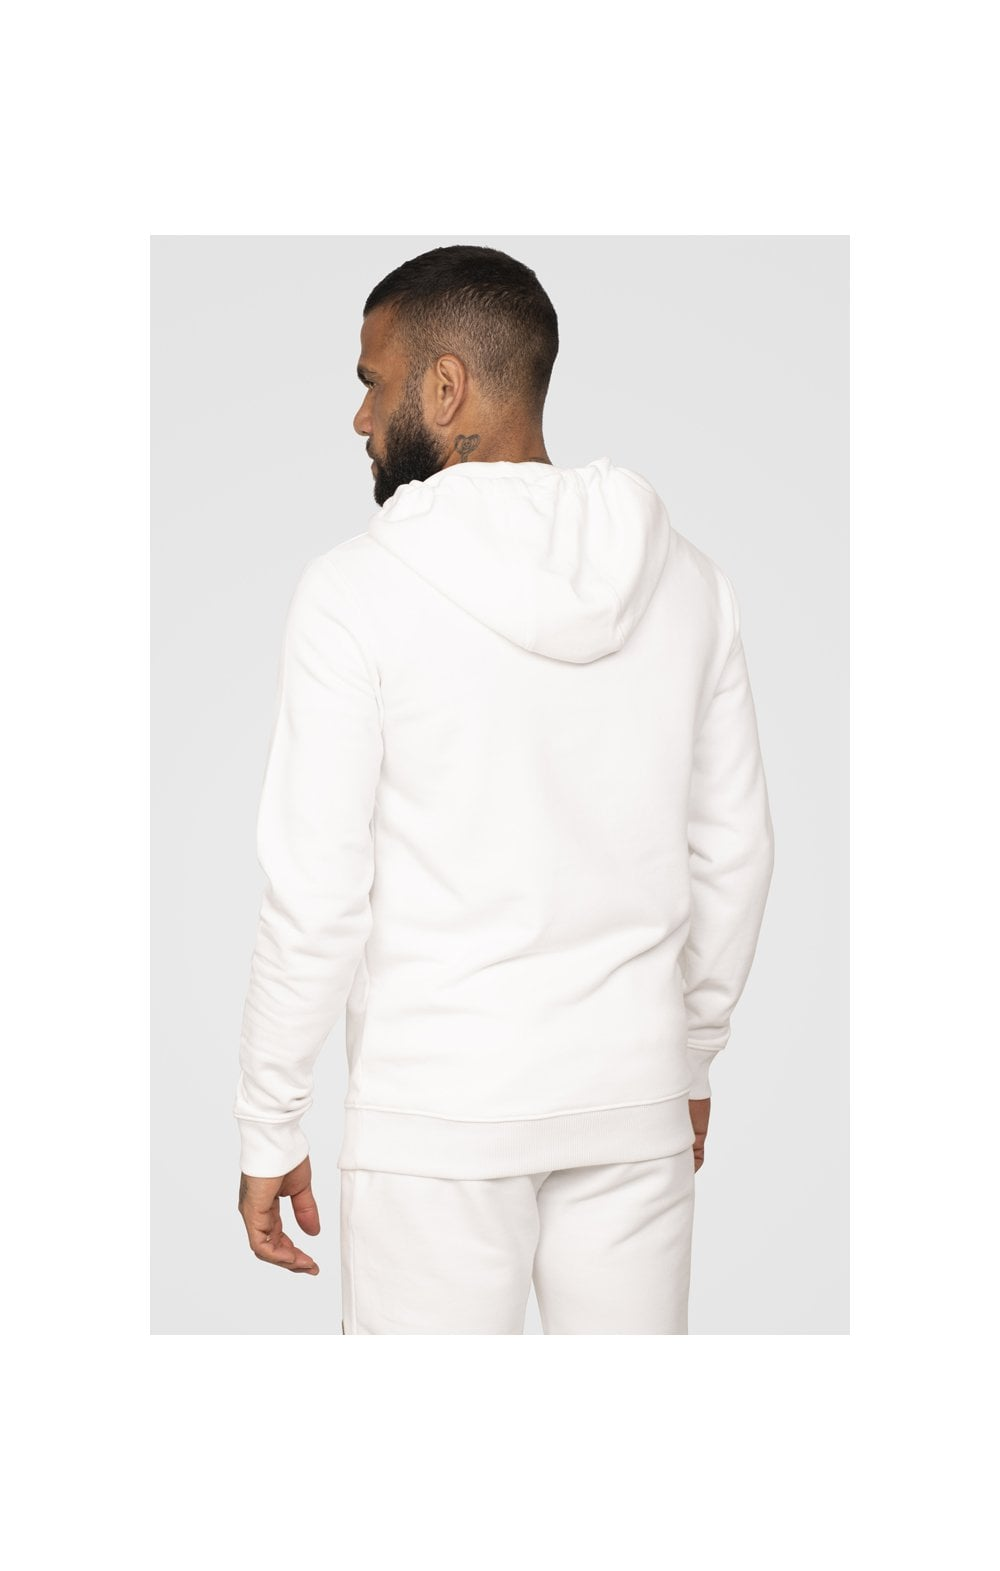 SikSilk x Dani Alves Sweat à Capuche - Blanc (8)